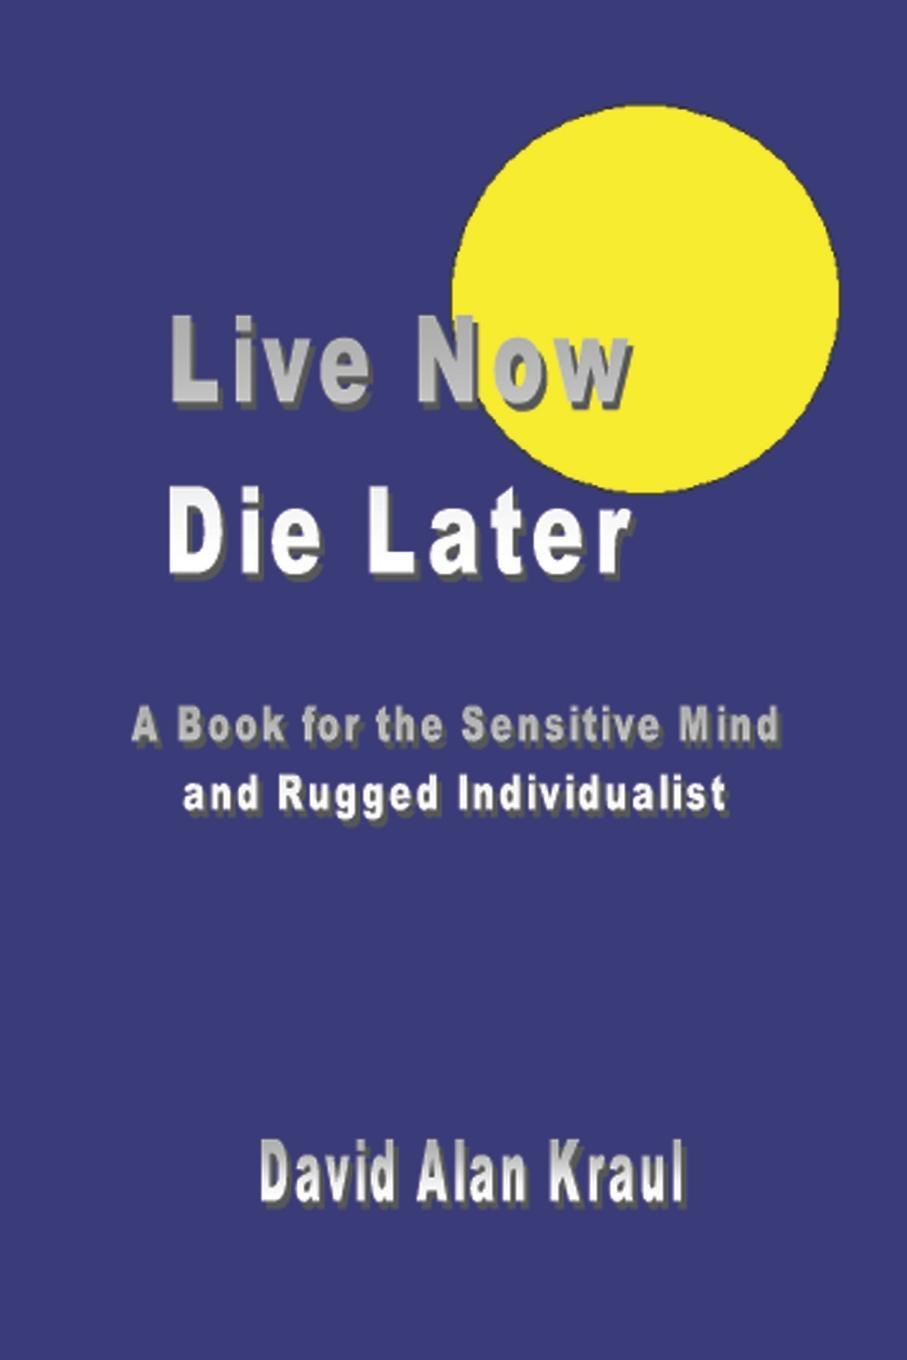 Live Now Die Later. A Book for the Sensitive Mind and Rugged Individualist